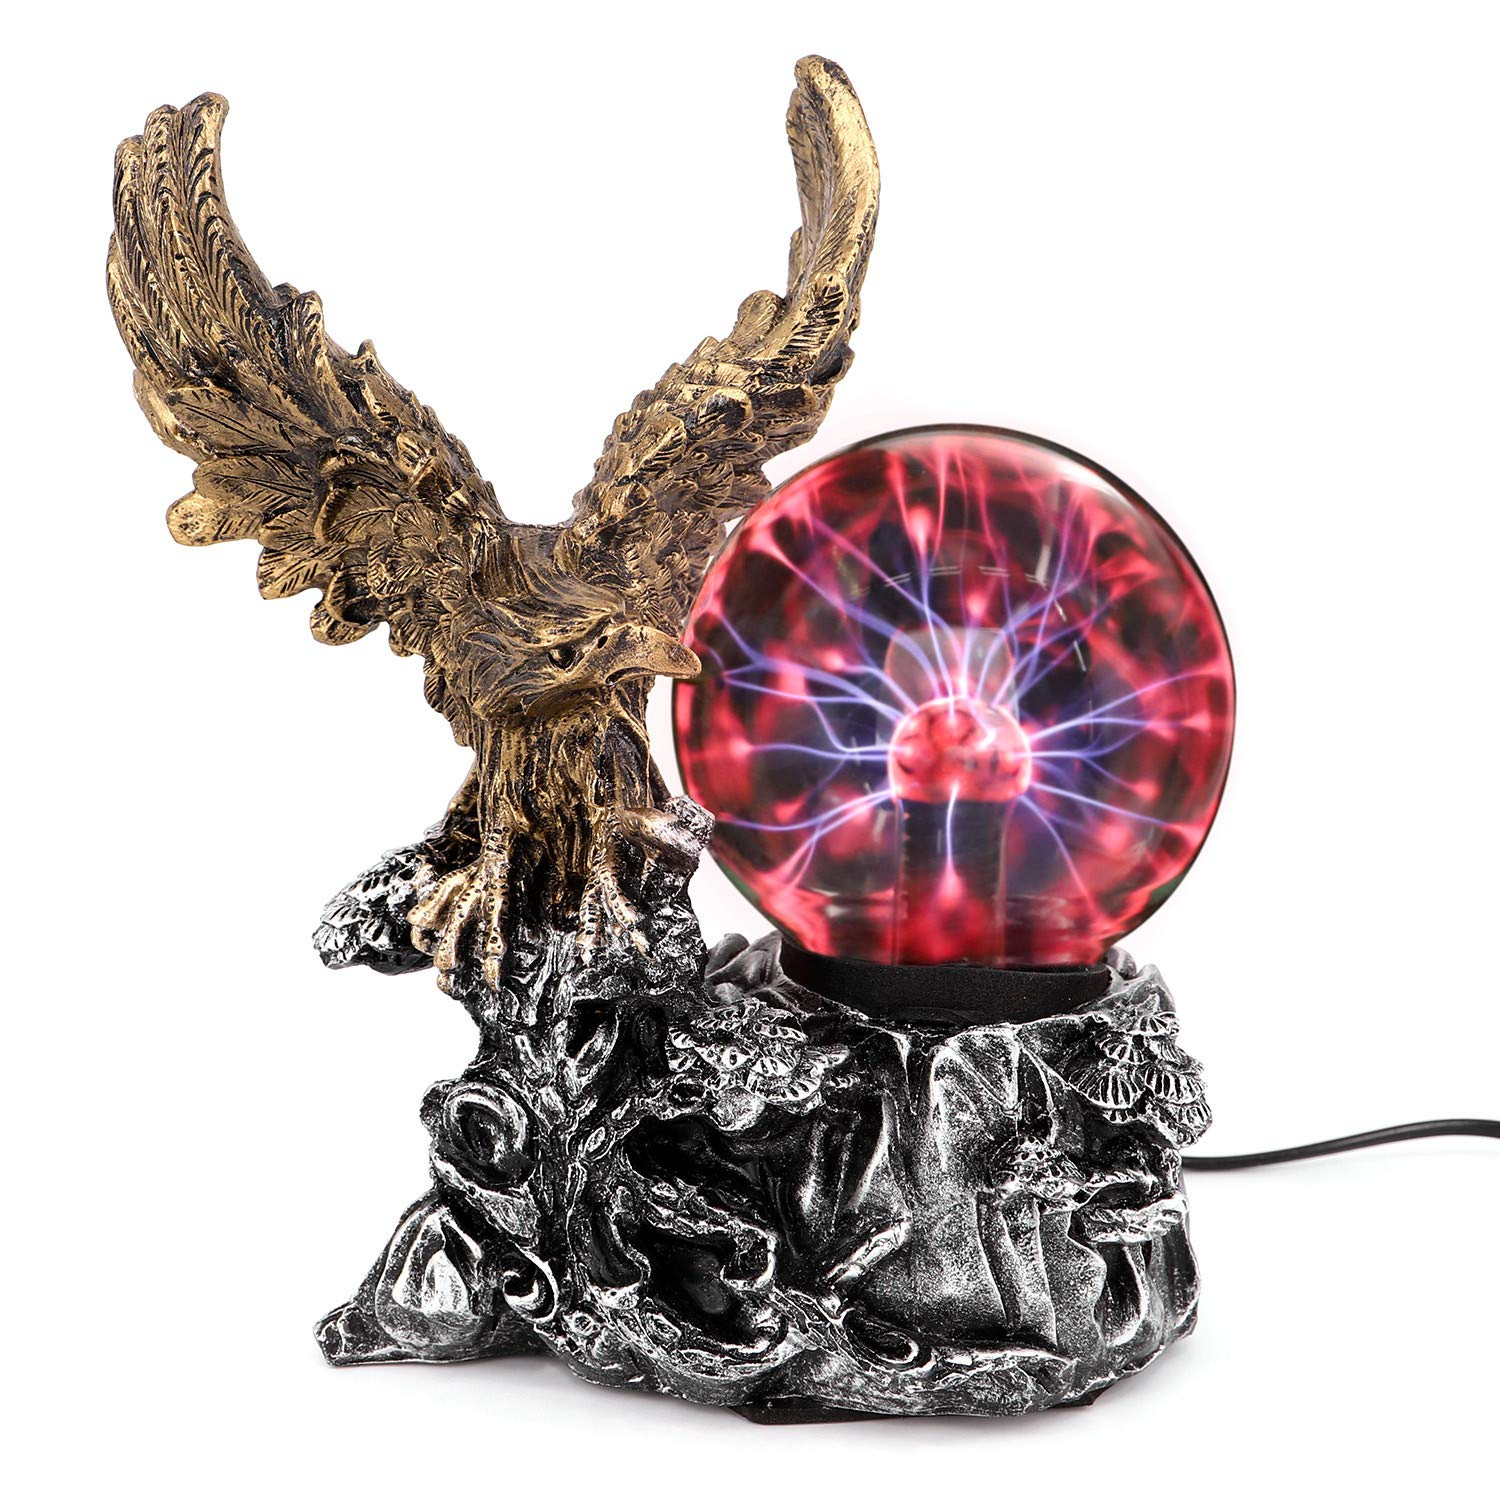 QTKJ Resin Plasma Ball Light, Electrostatic Magic Ball Lamp with Eagle for Home and Party, Halloween Decorations Gifts for Kids